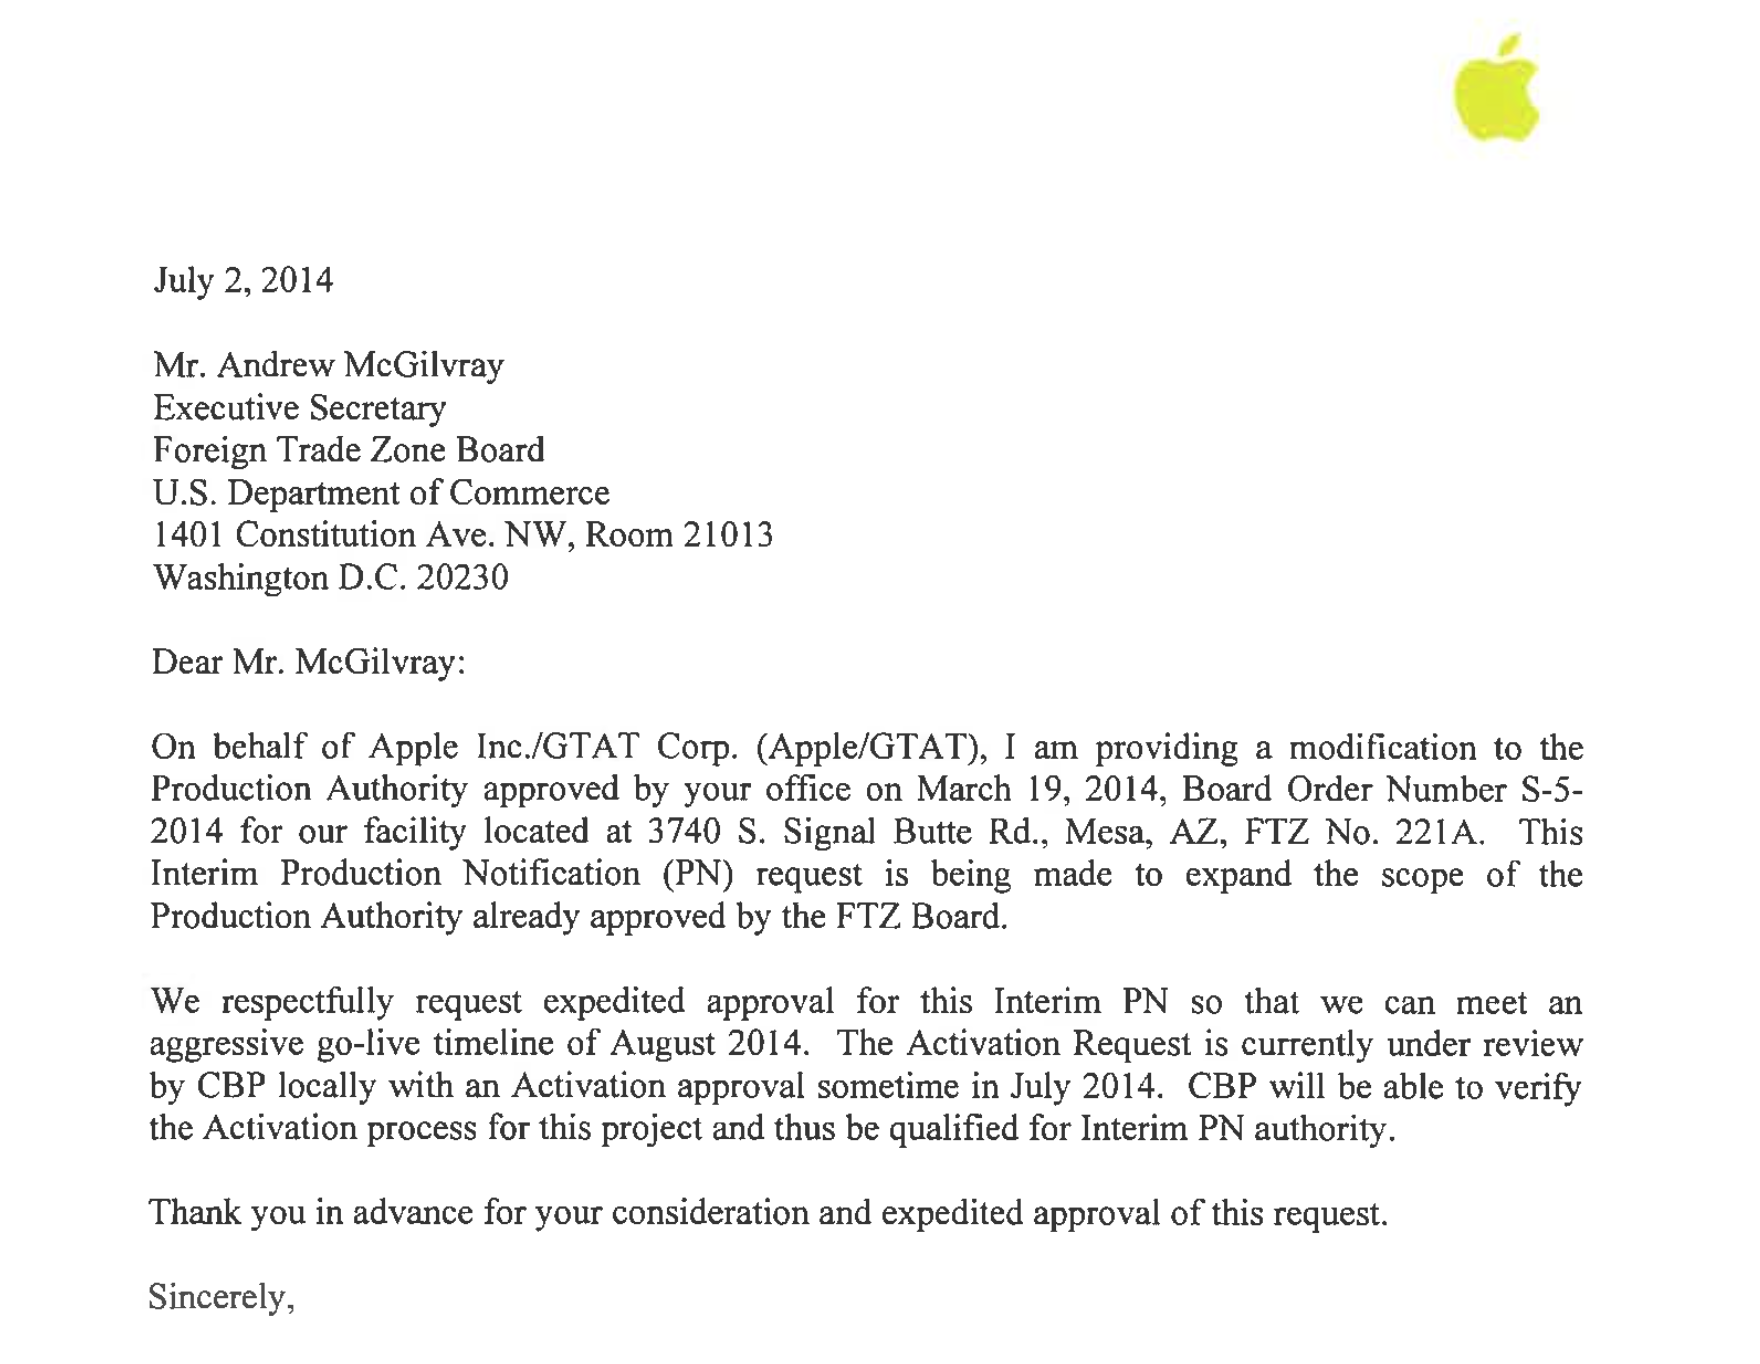 Cover Letter To Apple Files Kick Off Expanded Potentially Jewelry Classified